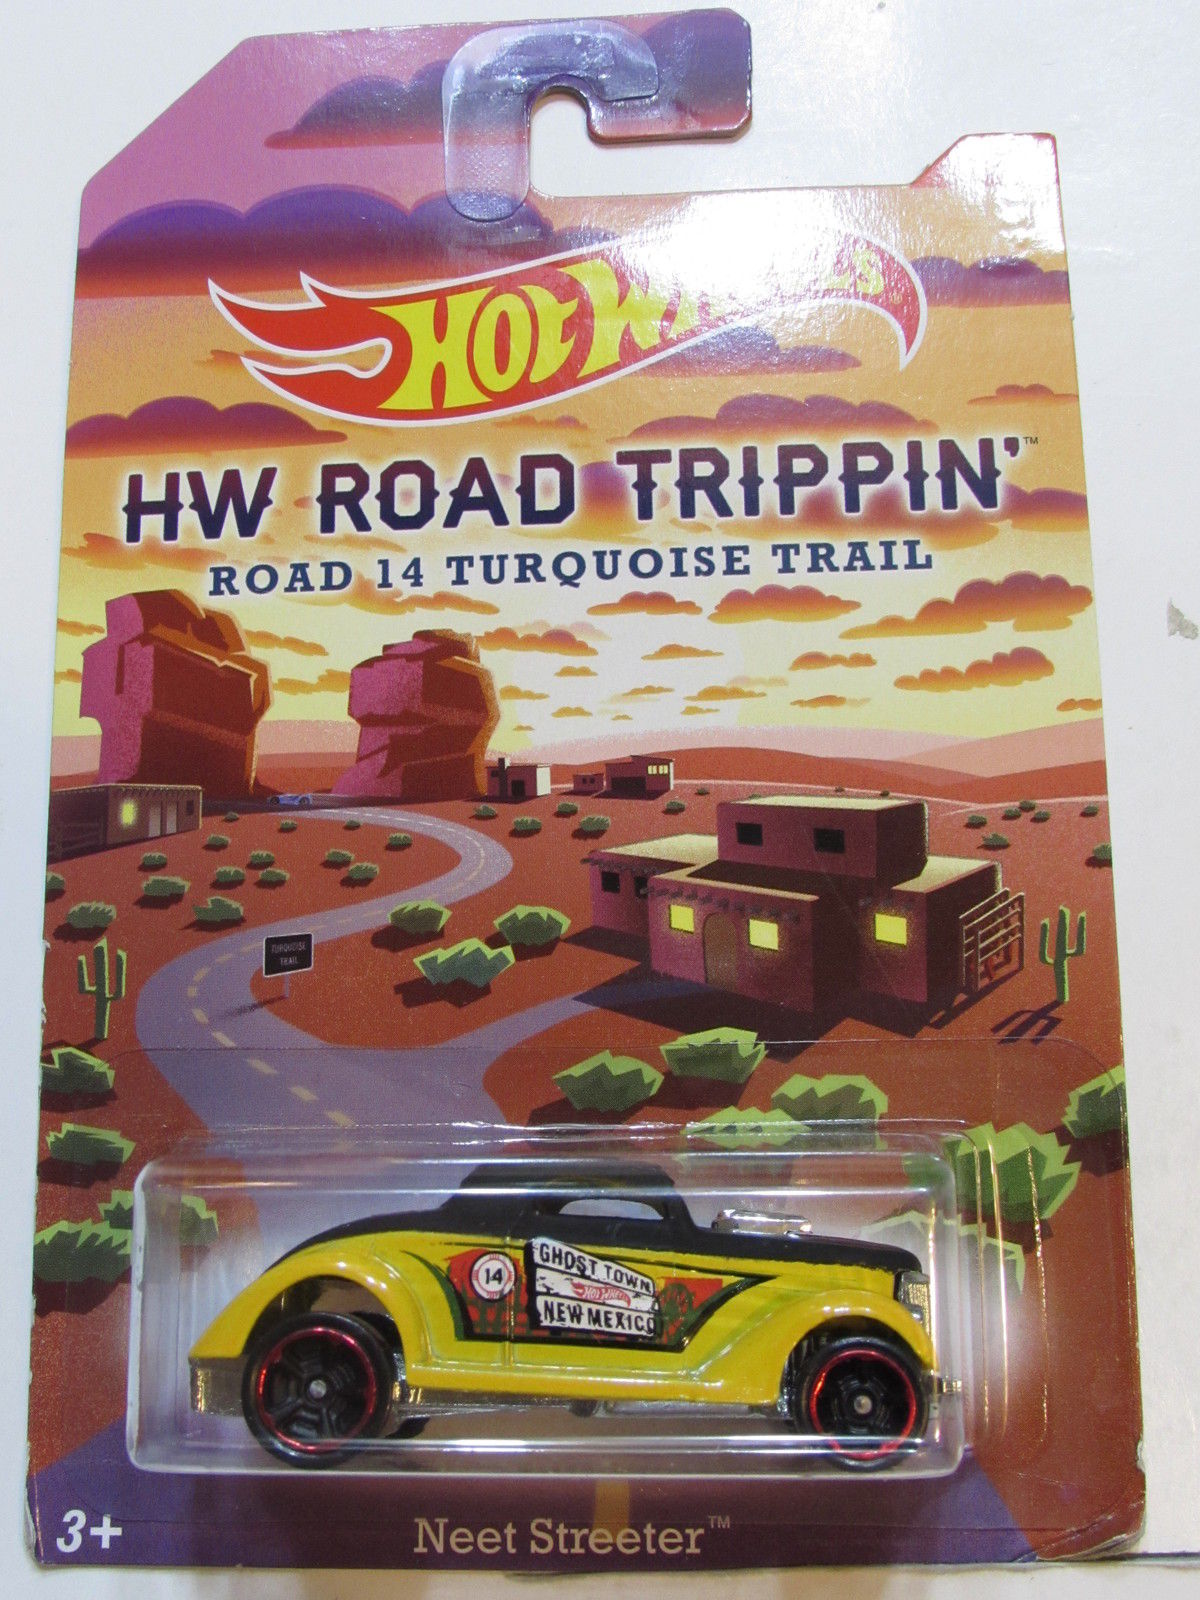 HOT WHEELS HW ROAD TRIPPIN' ROAD 14 TURQUOISE TRAIL NEET STREETER